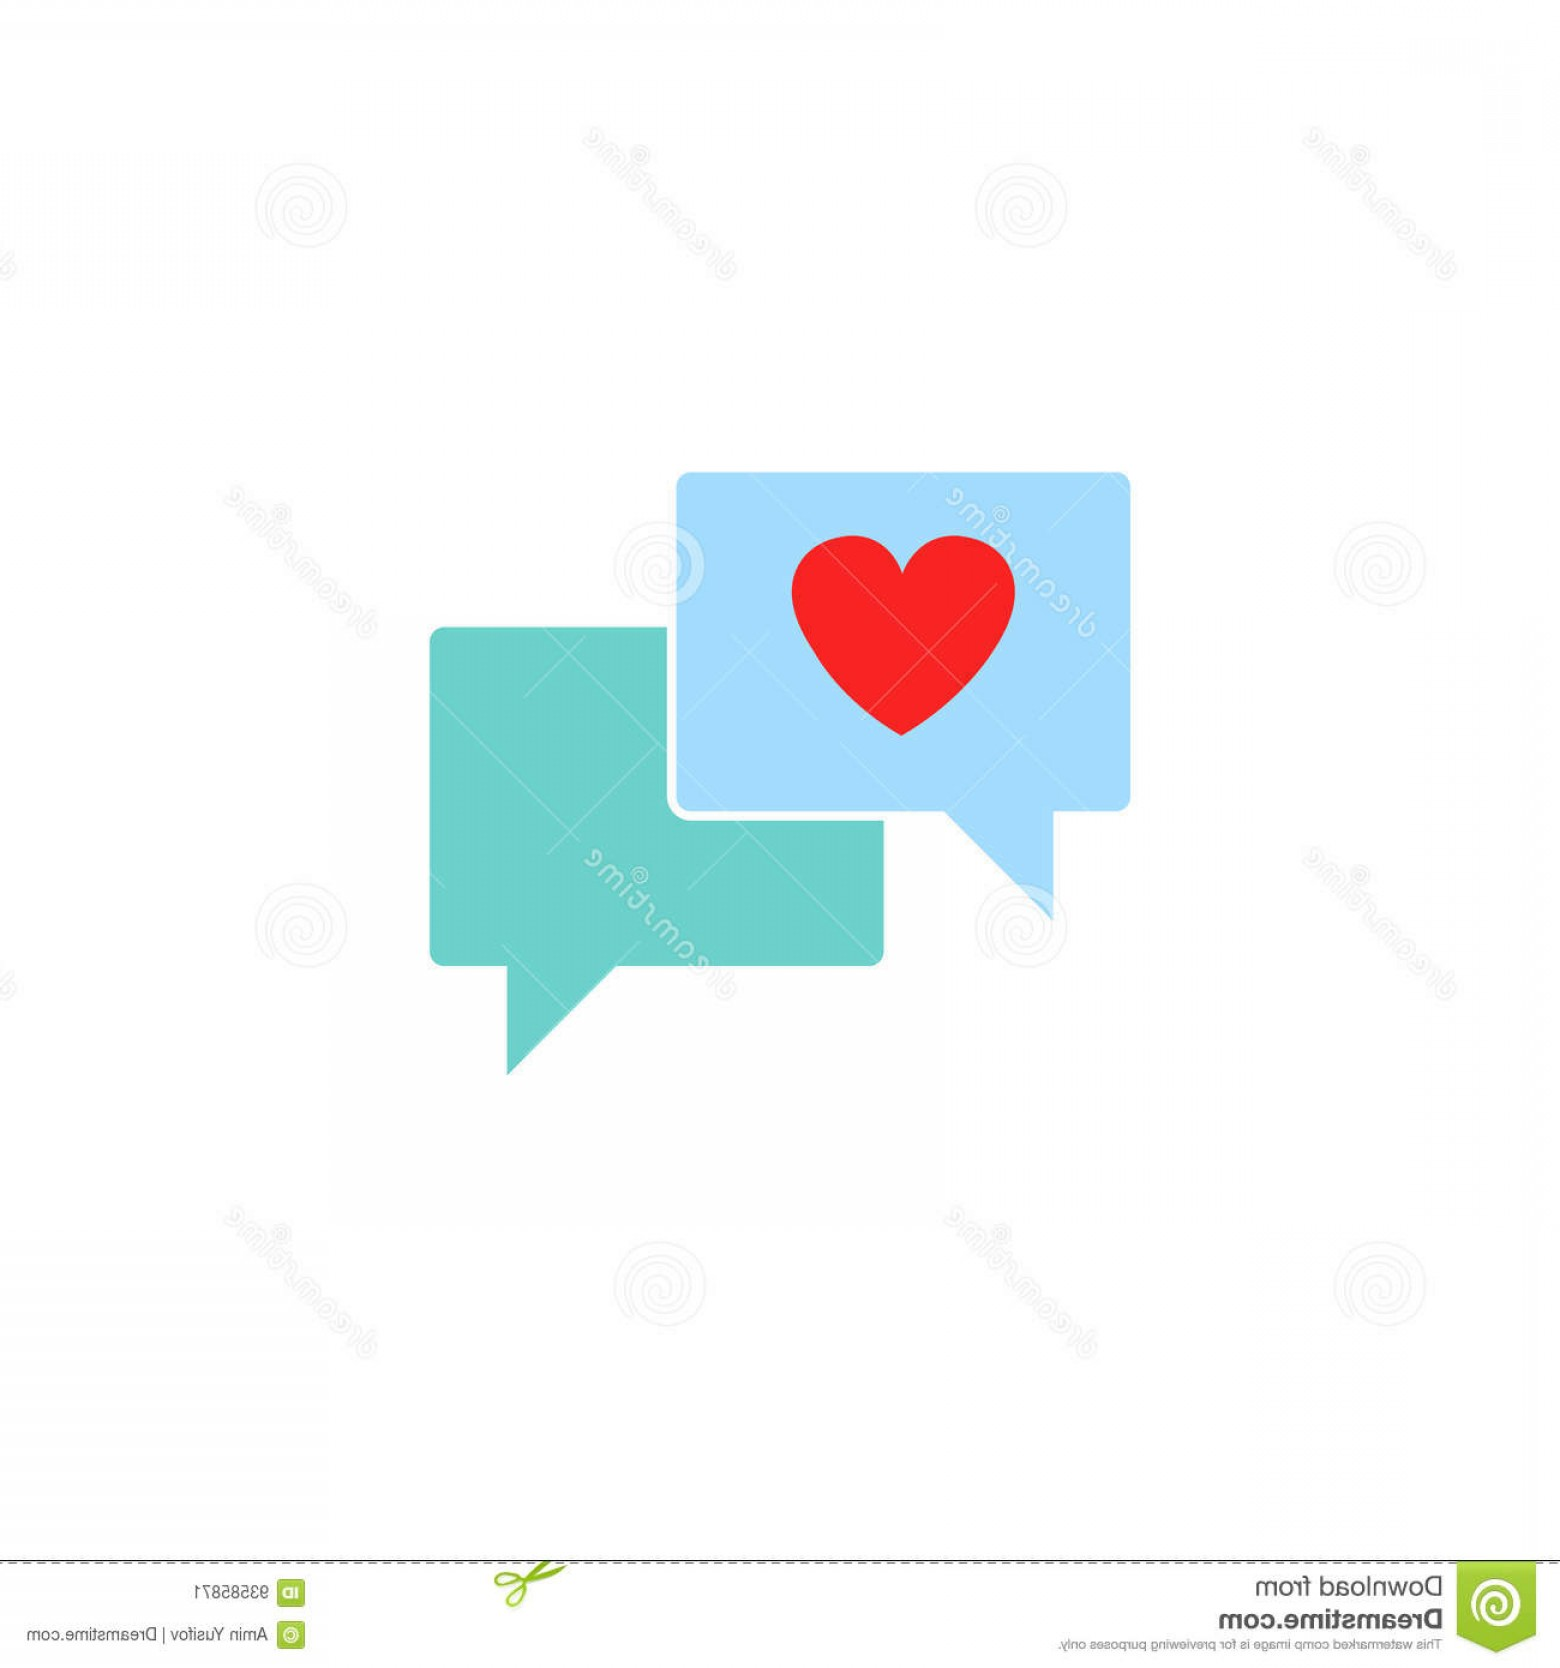 Solid Heart Vector Drawing: Stock Illustration Love Chat Solid Icon Heart Speech Bubble Vector Graphics Colorful Linear Pattern White Background Eps Image